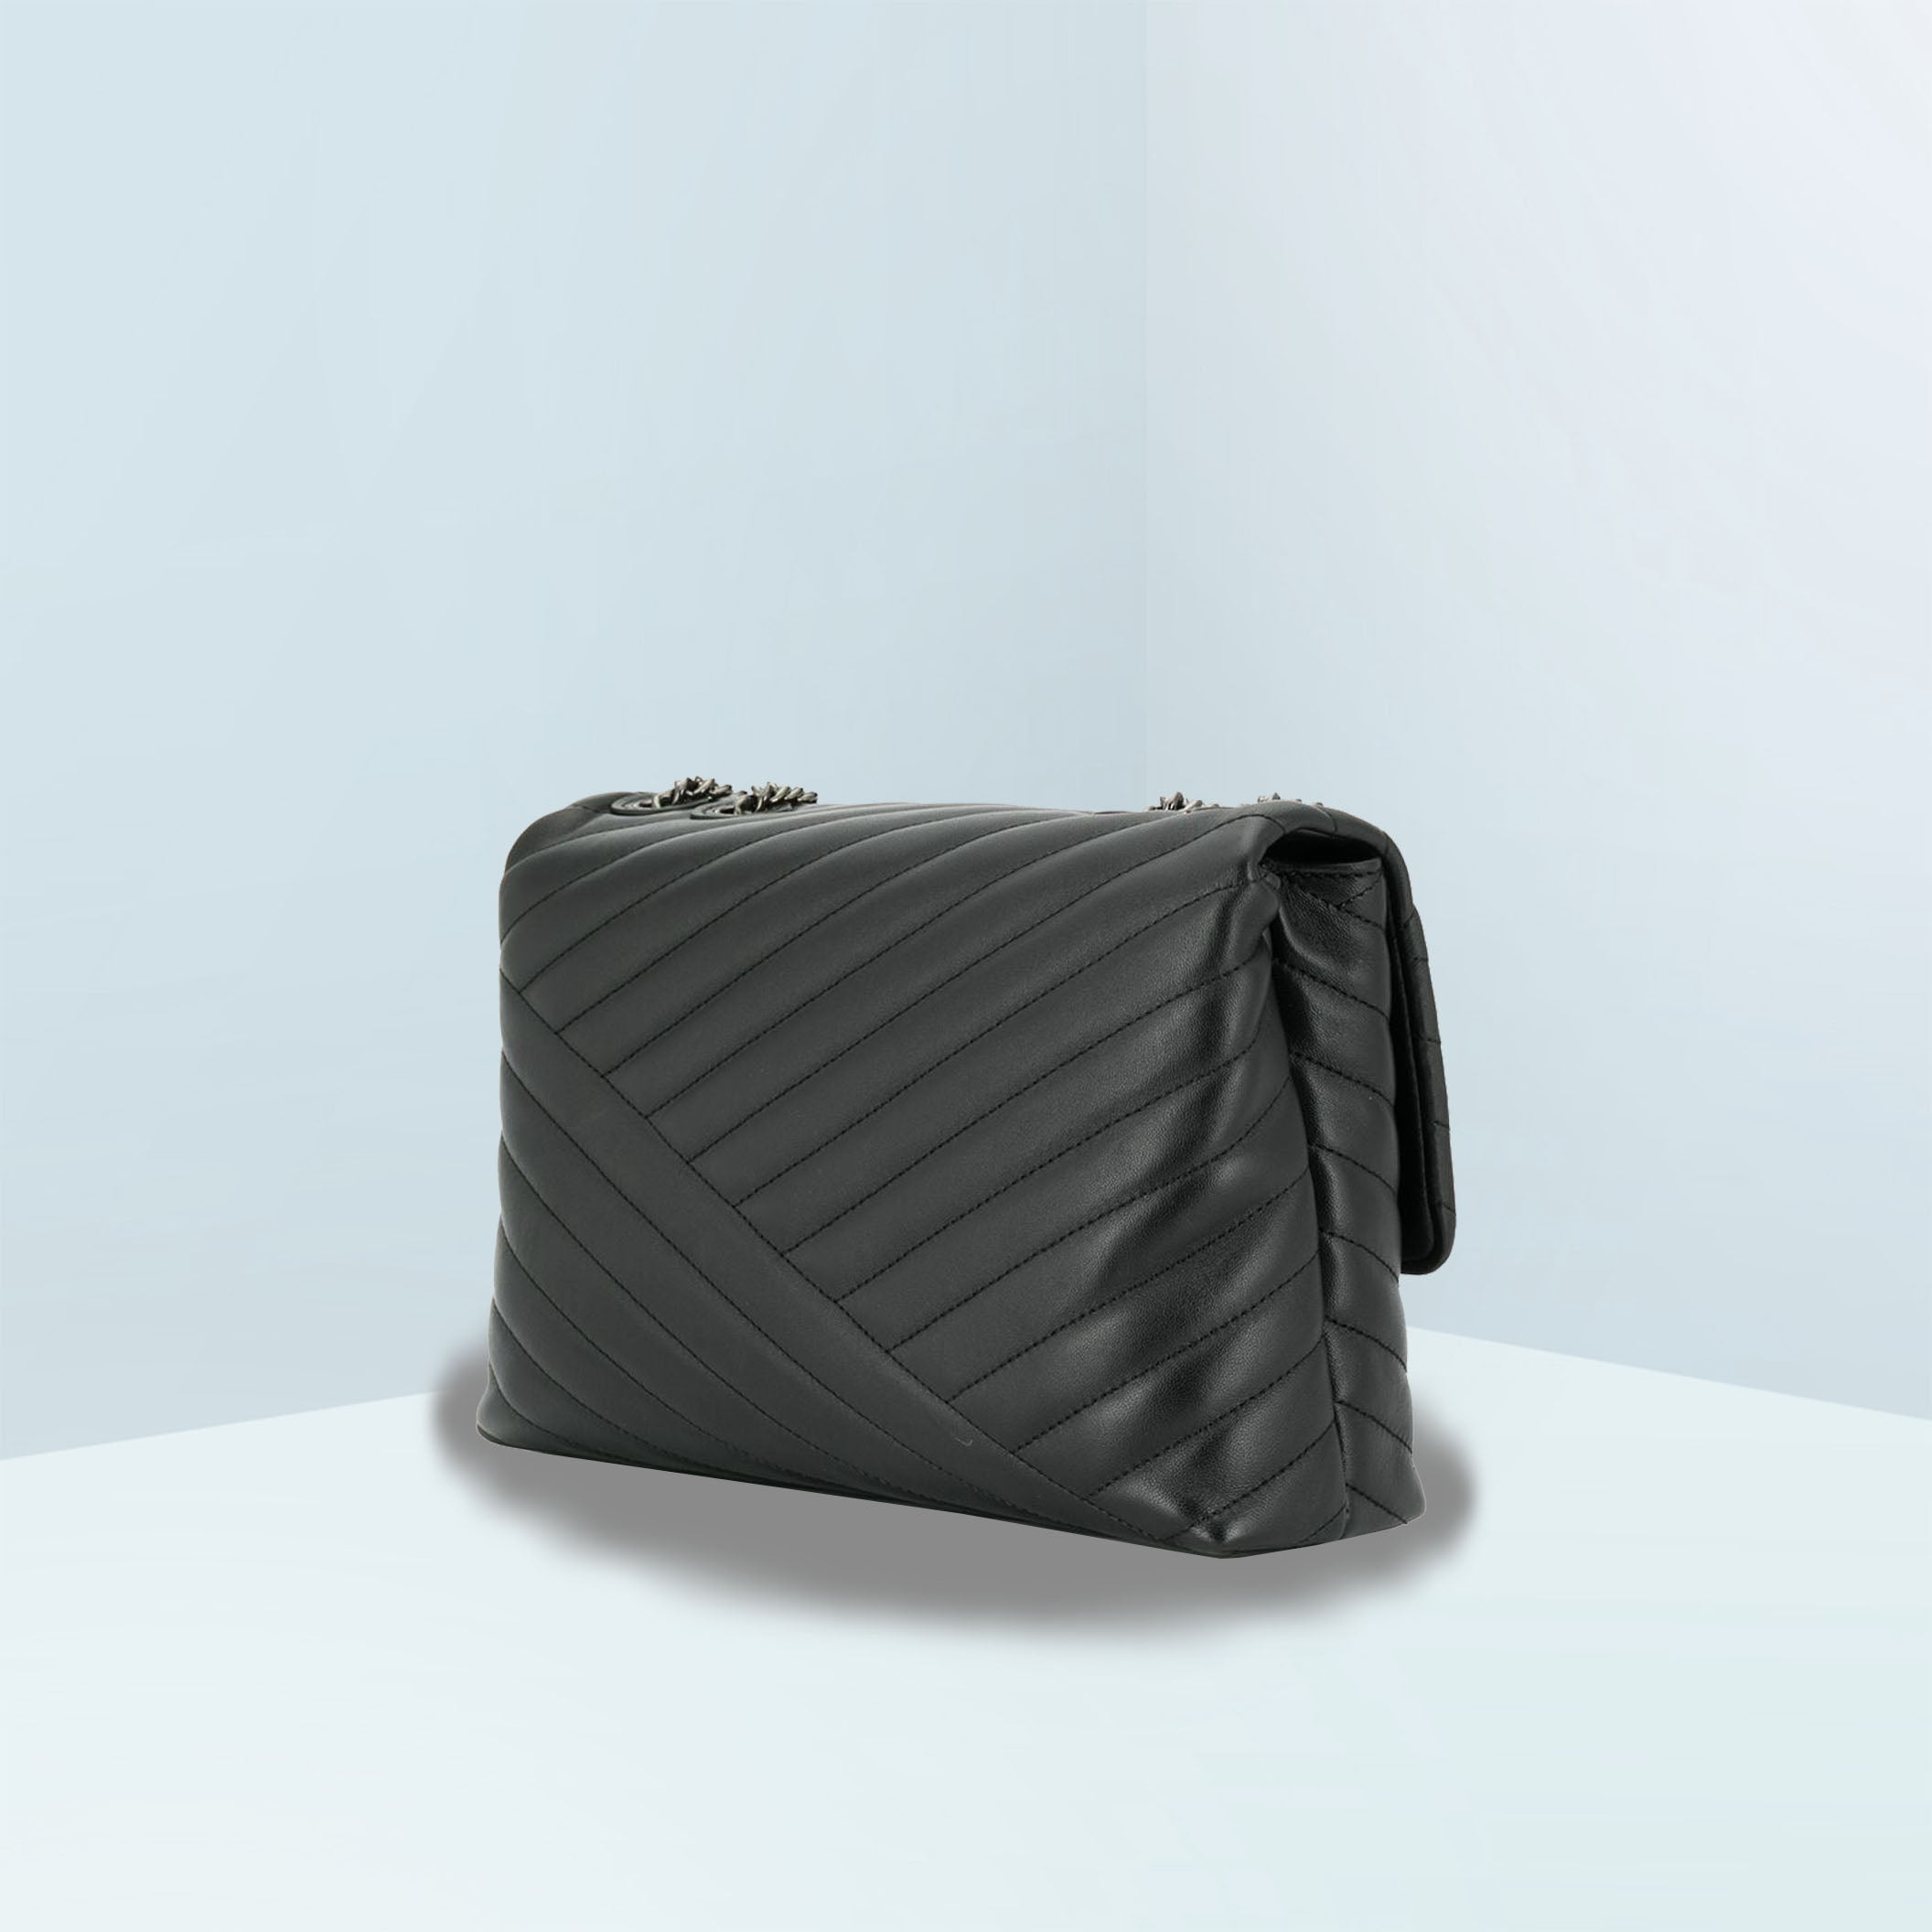 Kira Chevron Convertible Crossbody Bag